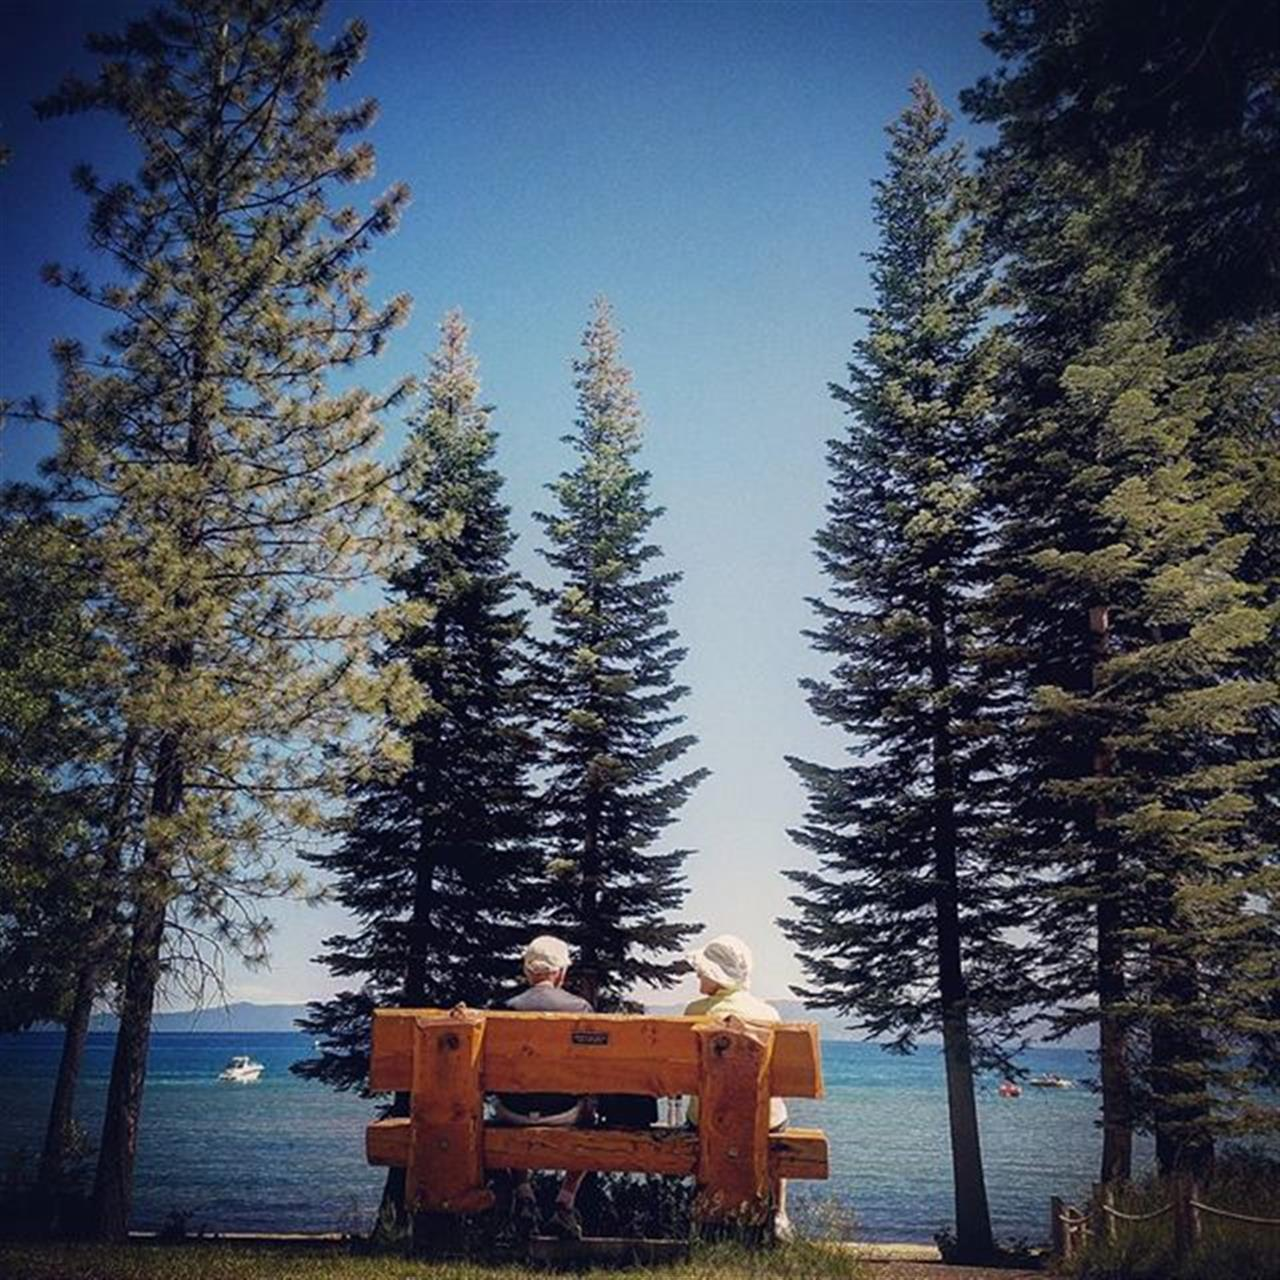 Enjoy a view with a loved one. Peacefulness within the trees of South Lake Tahoe.